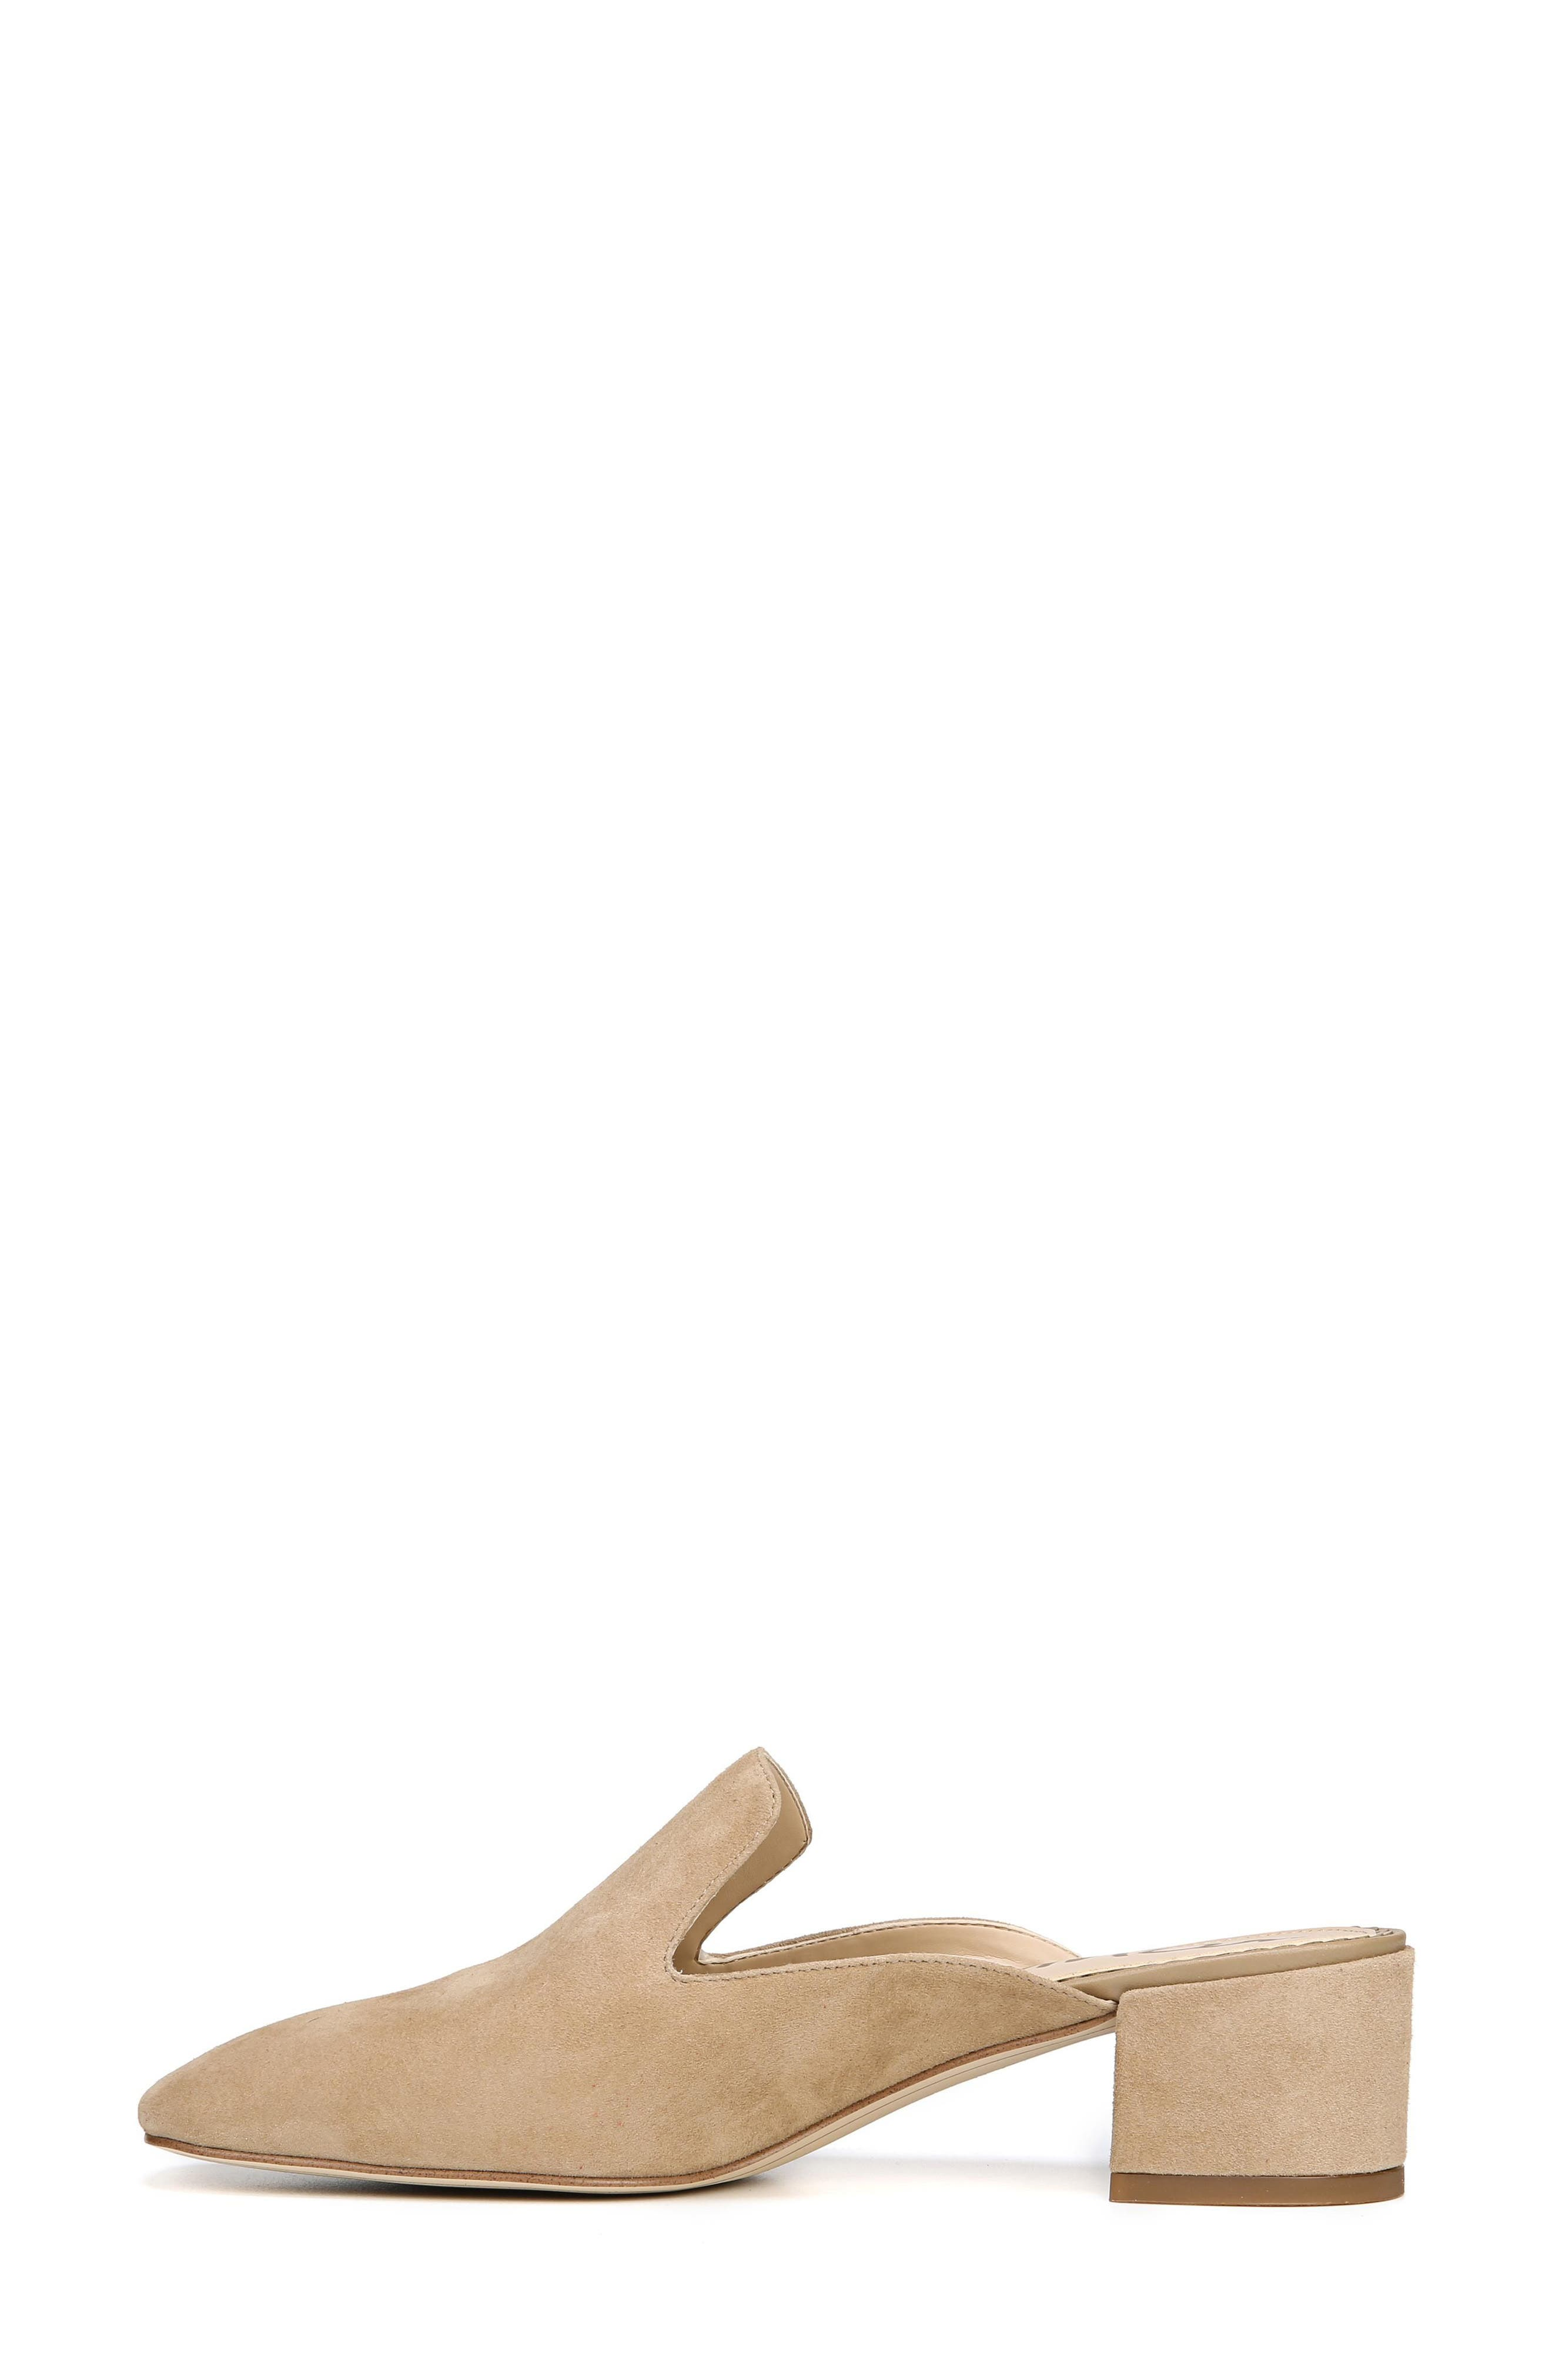 Adair Loafer Mule,                             Alternate thumbnail 8, color,                             OATMEAL LEATHER